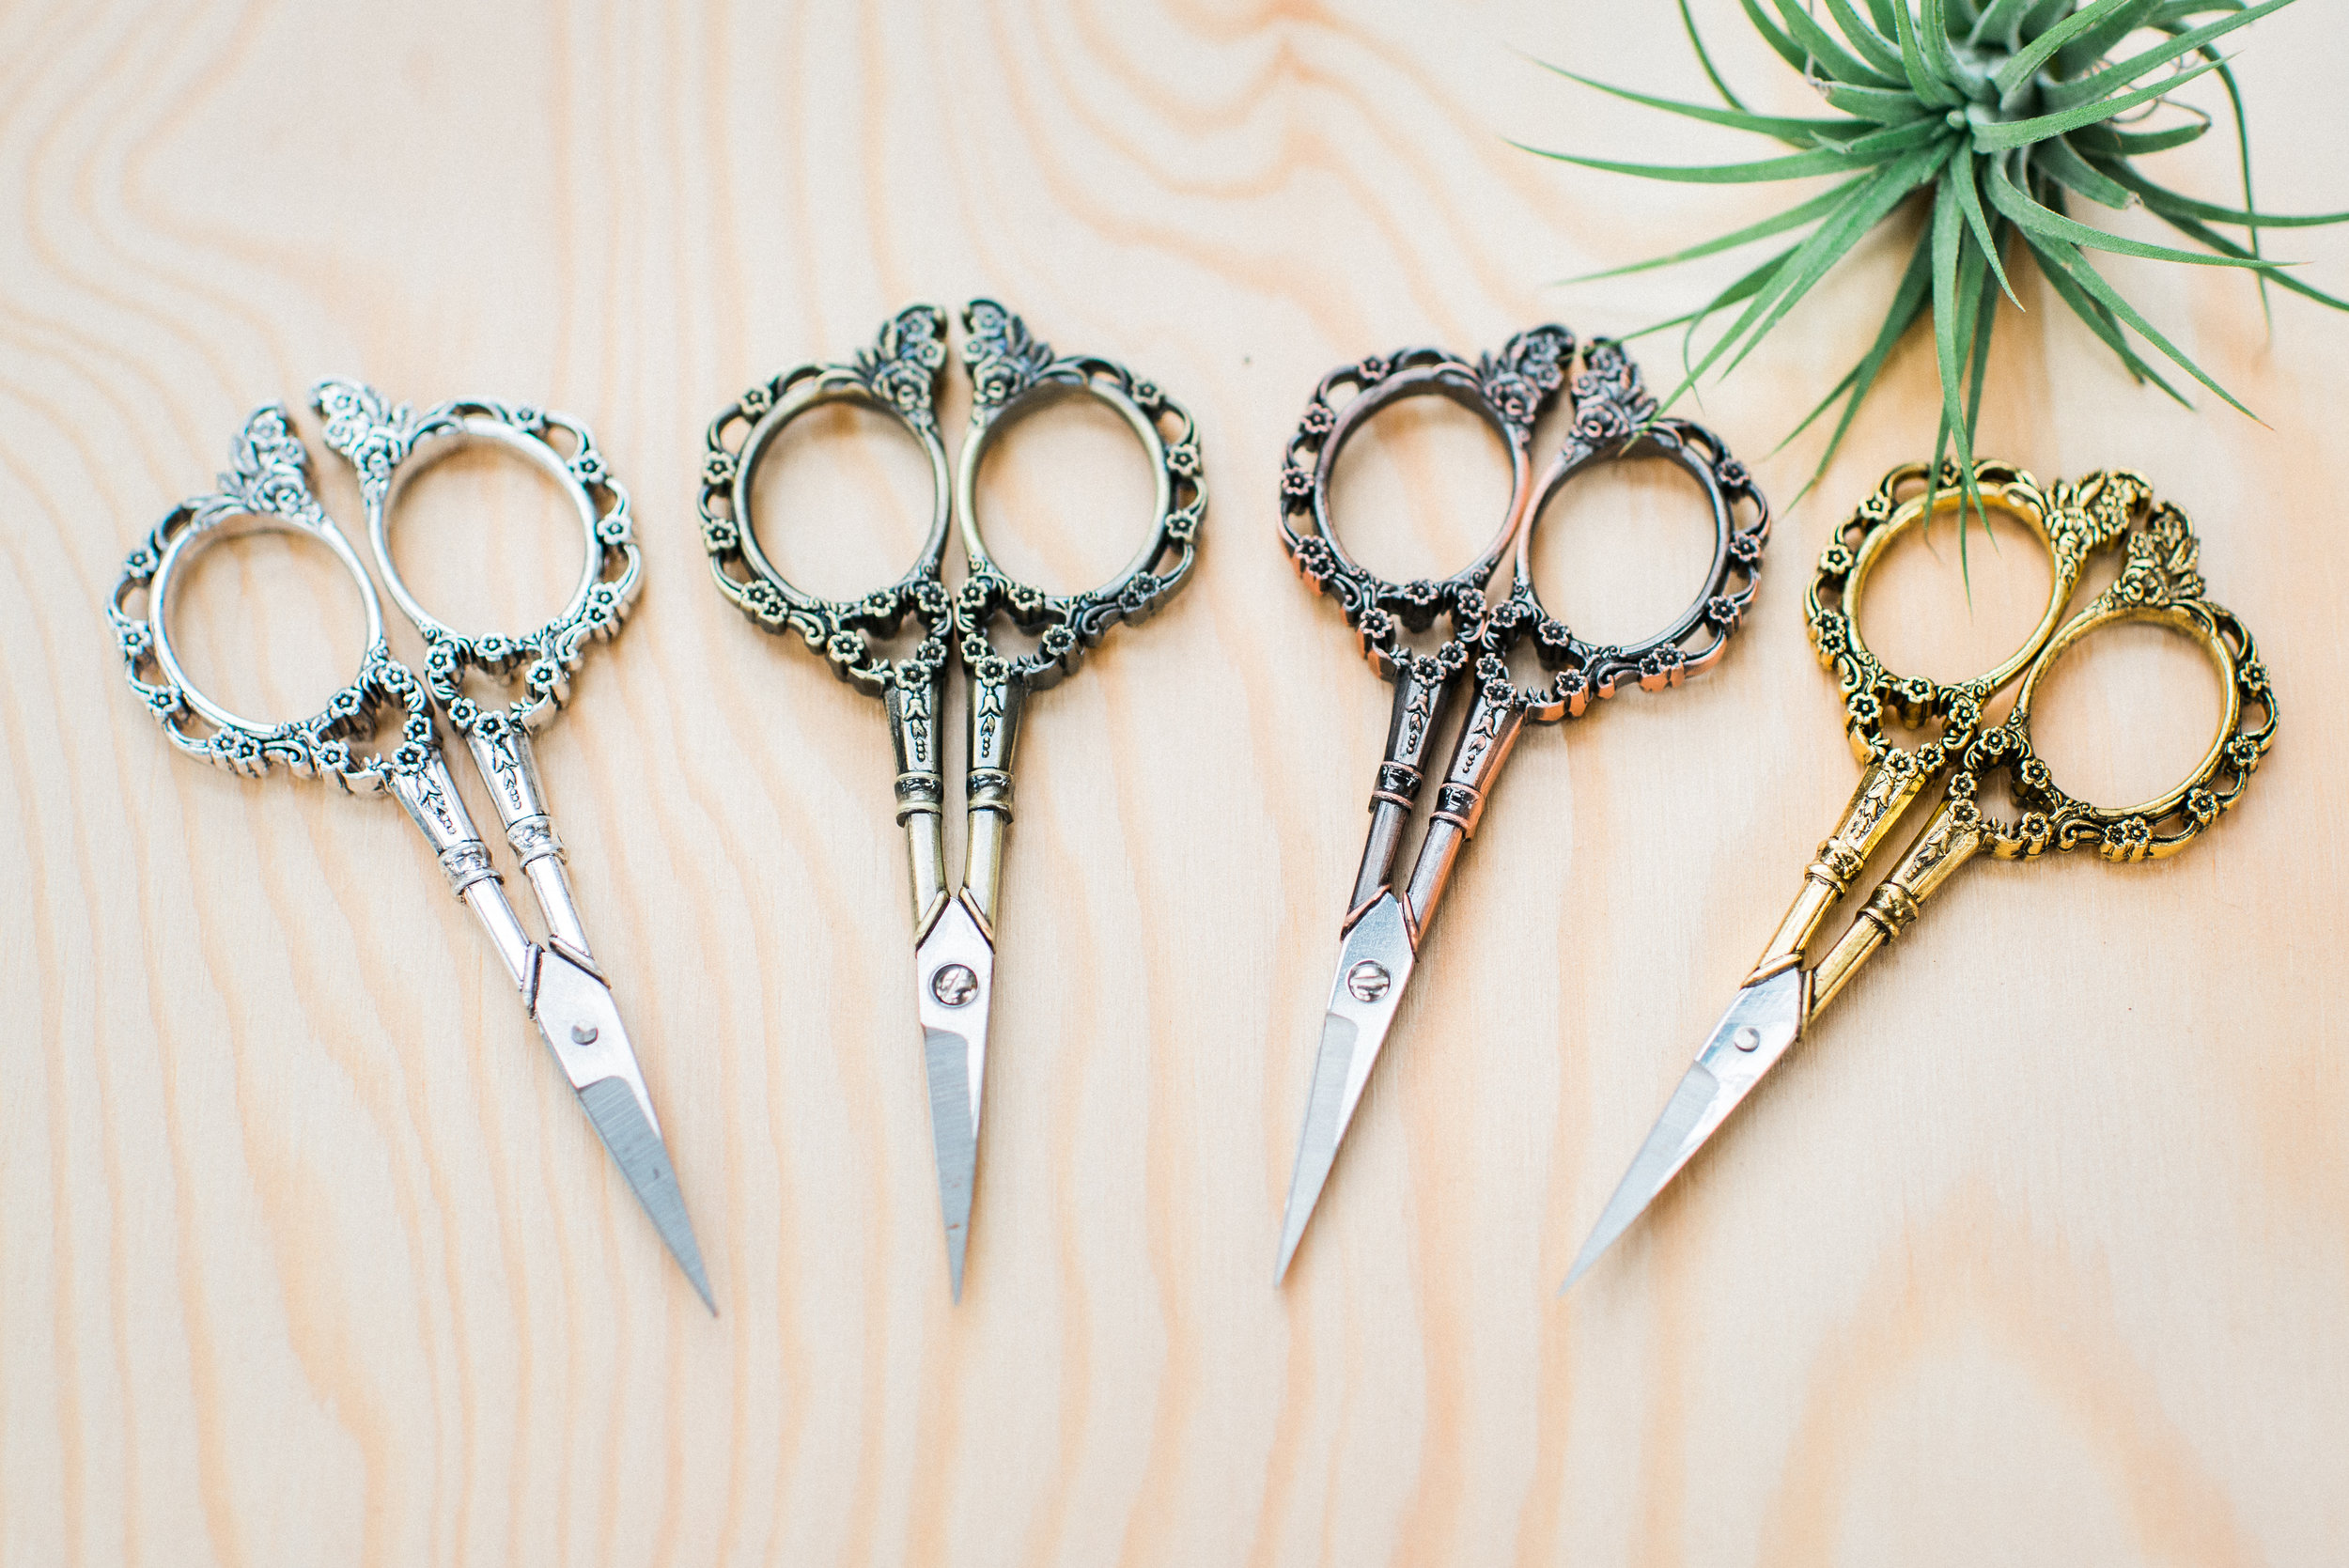 PeacockandPeony_craft_scissors.jpg